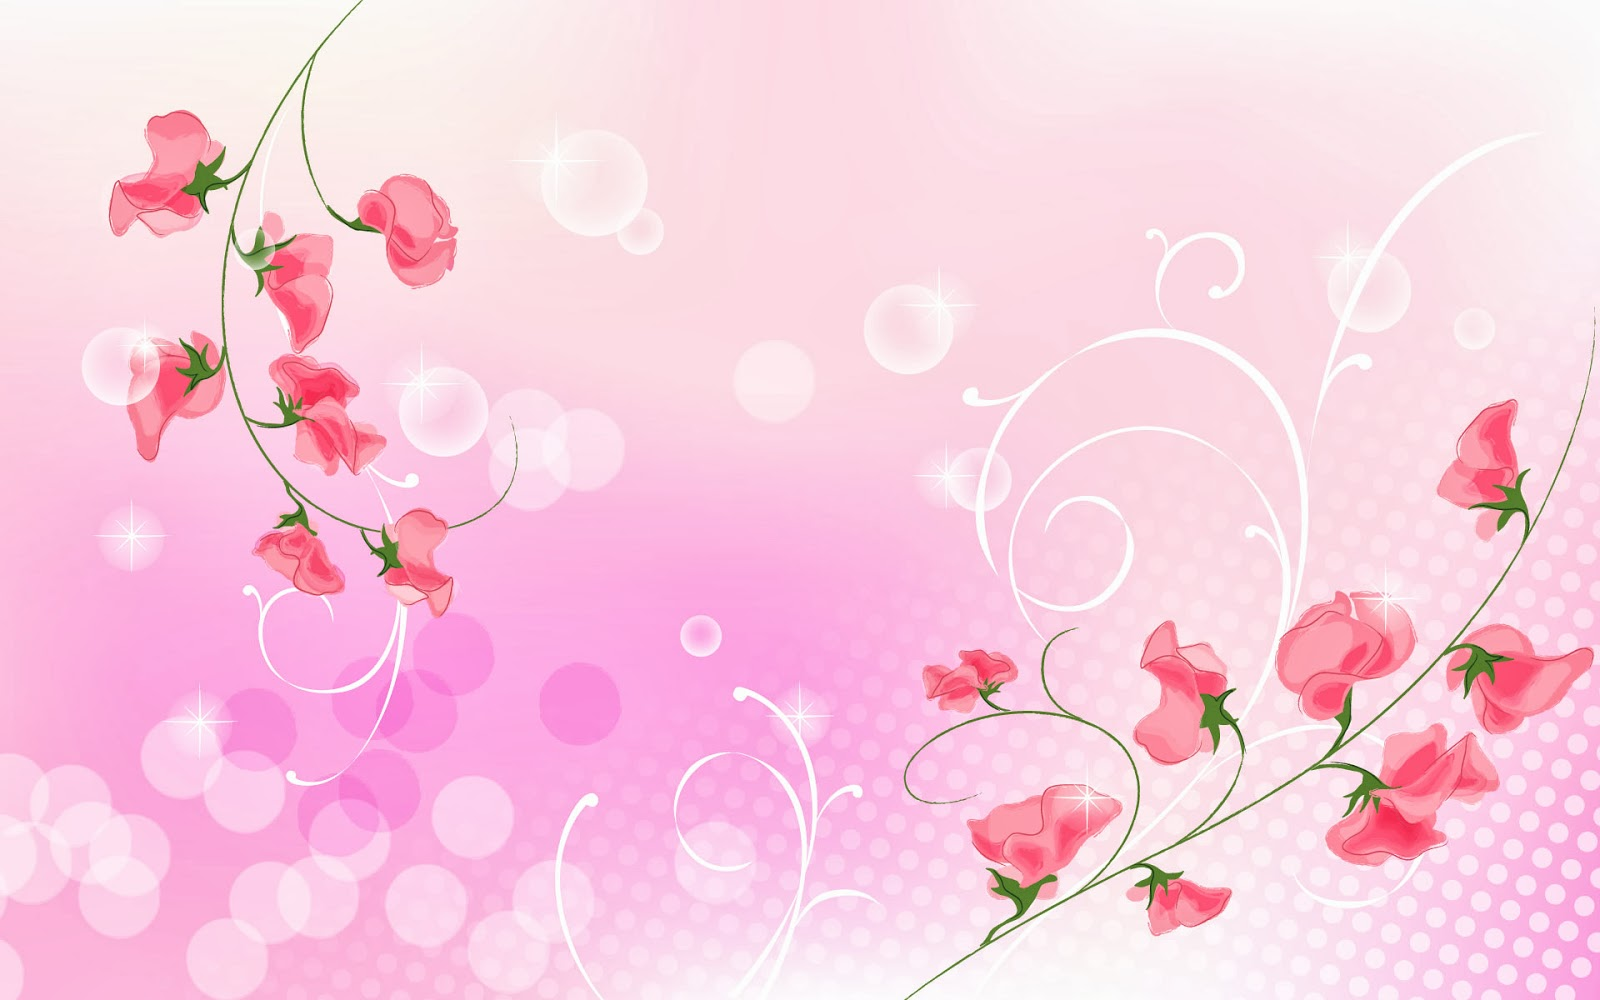 HD Wallpapers Desktop: Pink Background HD DeskTop Wallpapers